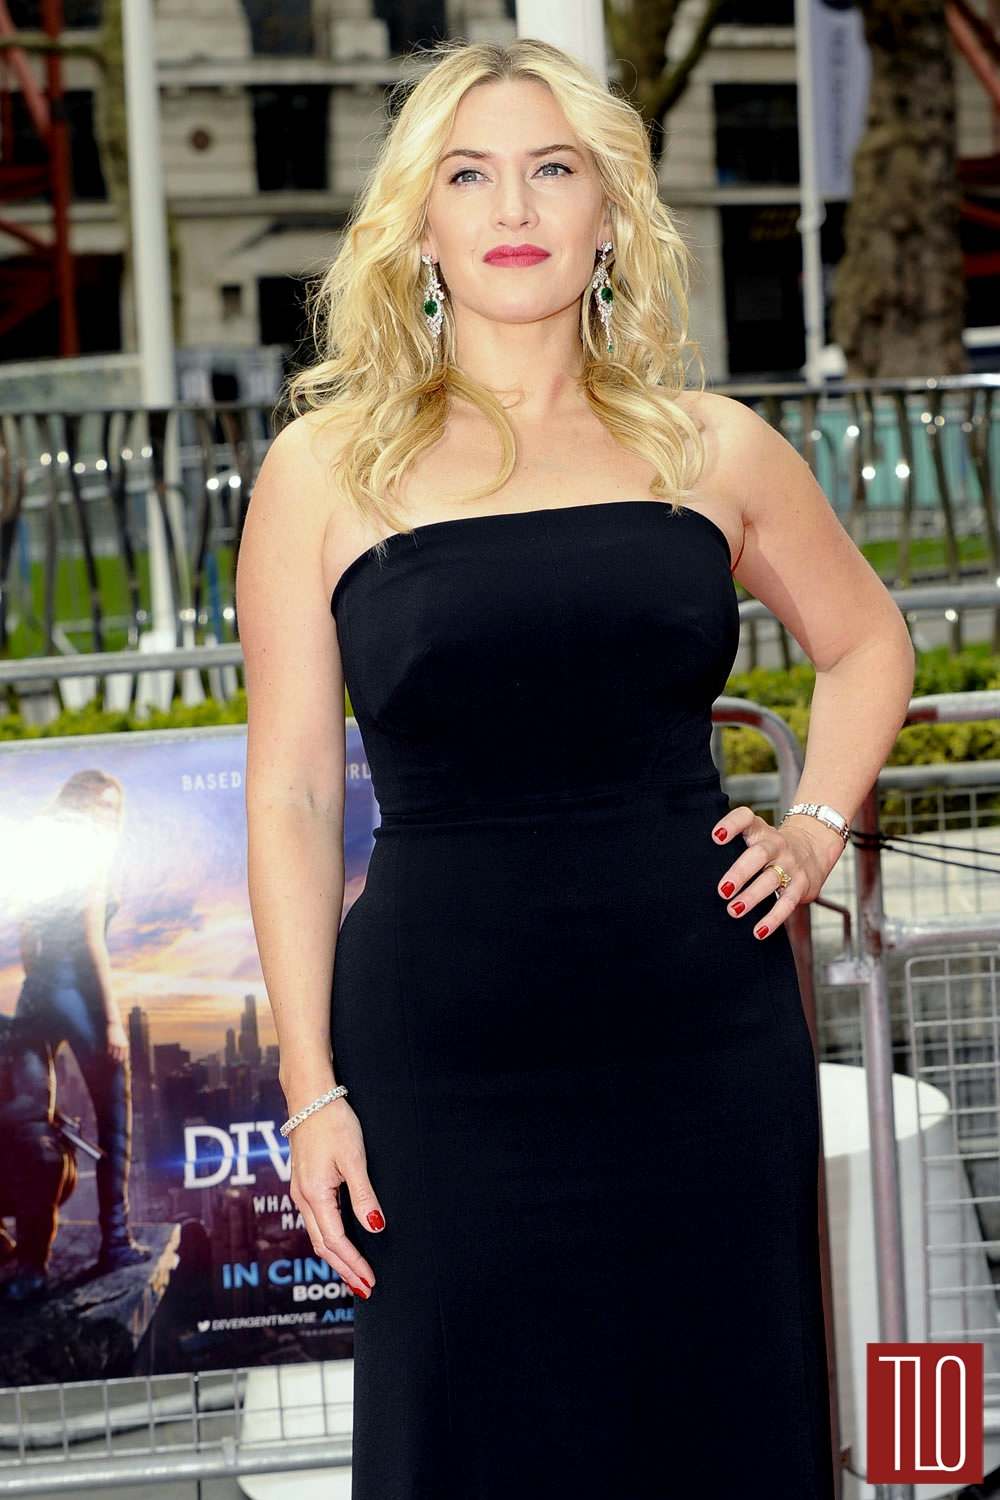 Kate-Winslet-Jenny-Packham-Divergent-London-Premiere-Tom-Lorenzo-Site-TLO (1)